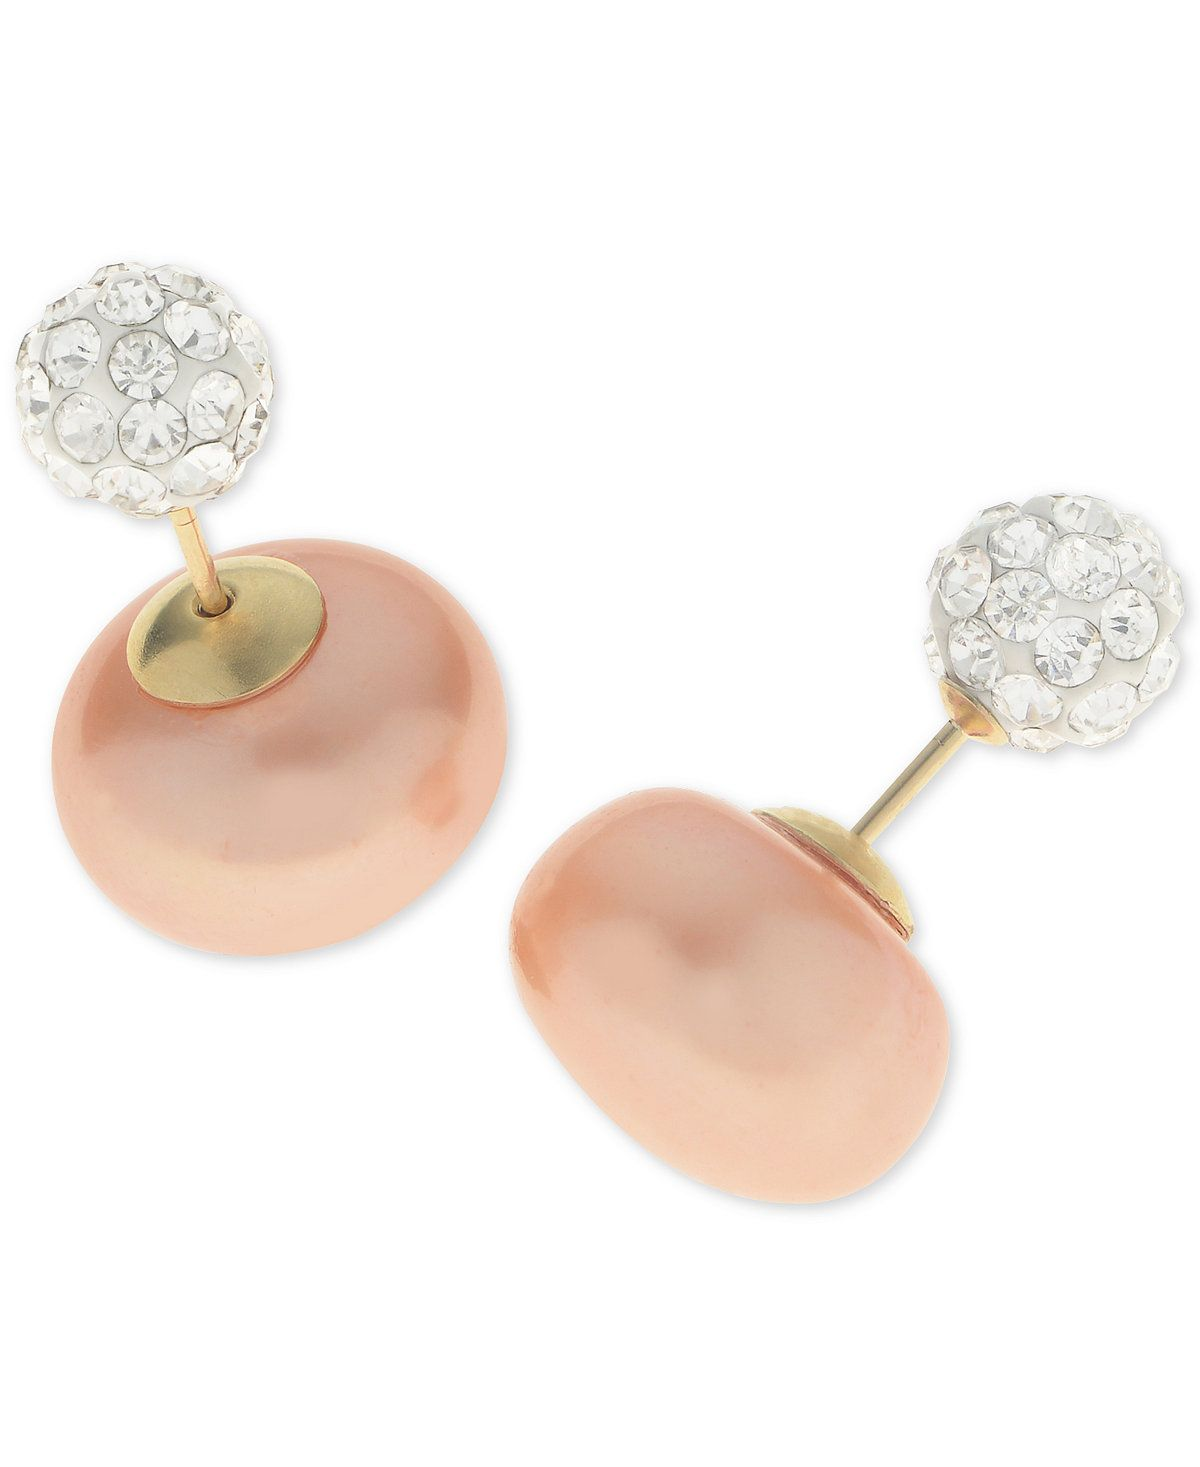 Dyed Pink Cultured Freshwater Pearl (11mm) And Pavé Crystal Ball Front And  Back Earrings In 14k Gold